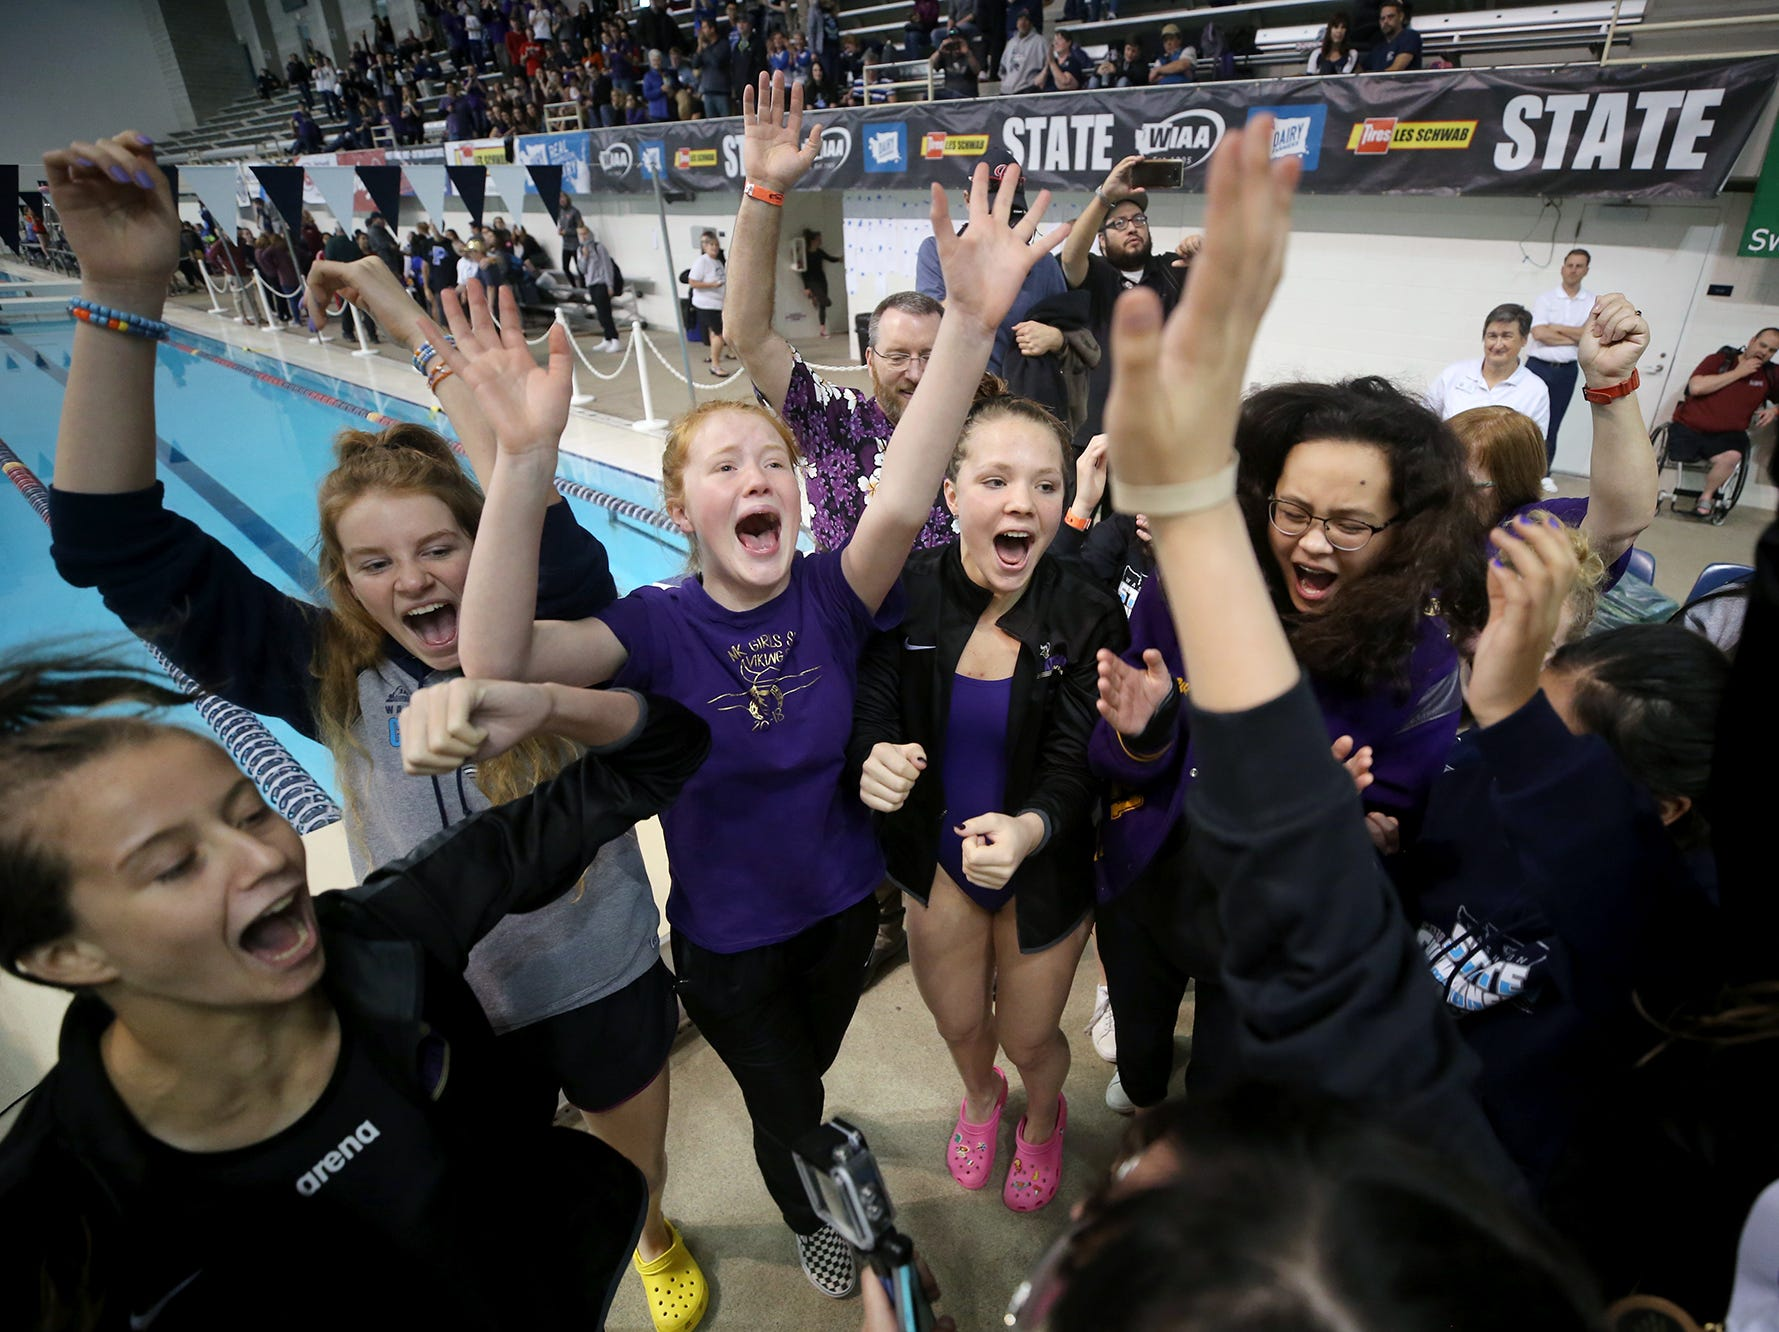 The North Kitsap Girls swim team won the team title at the 2018 2A Girls State Swim & Diving Championships on Saturday, November, 10, 2018 at the King County Aquatics Center, in Federal Way.  North Kitsap swimmers cheer after winning the team title.